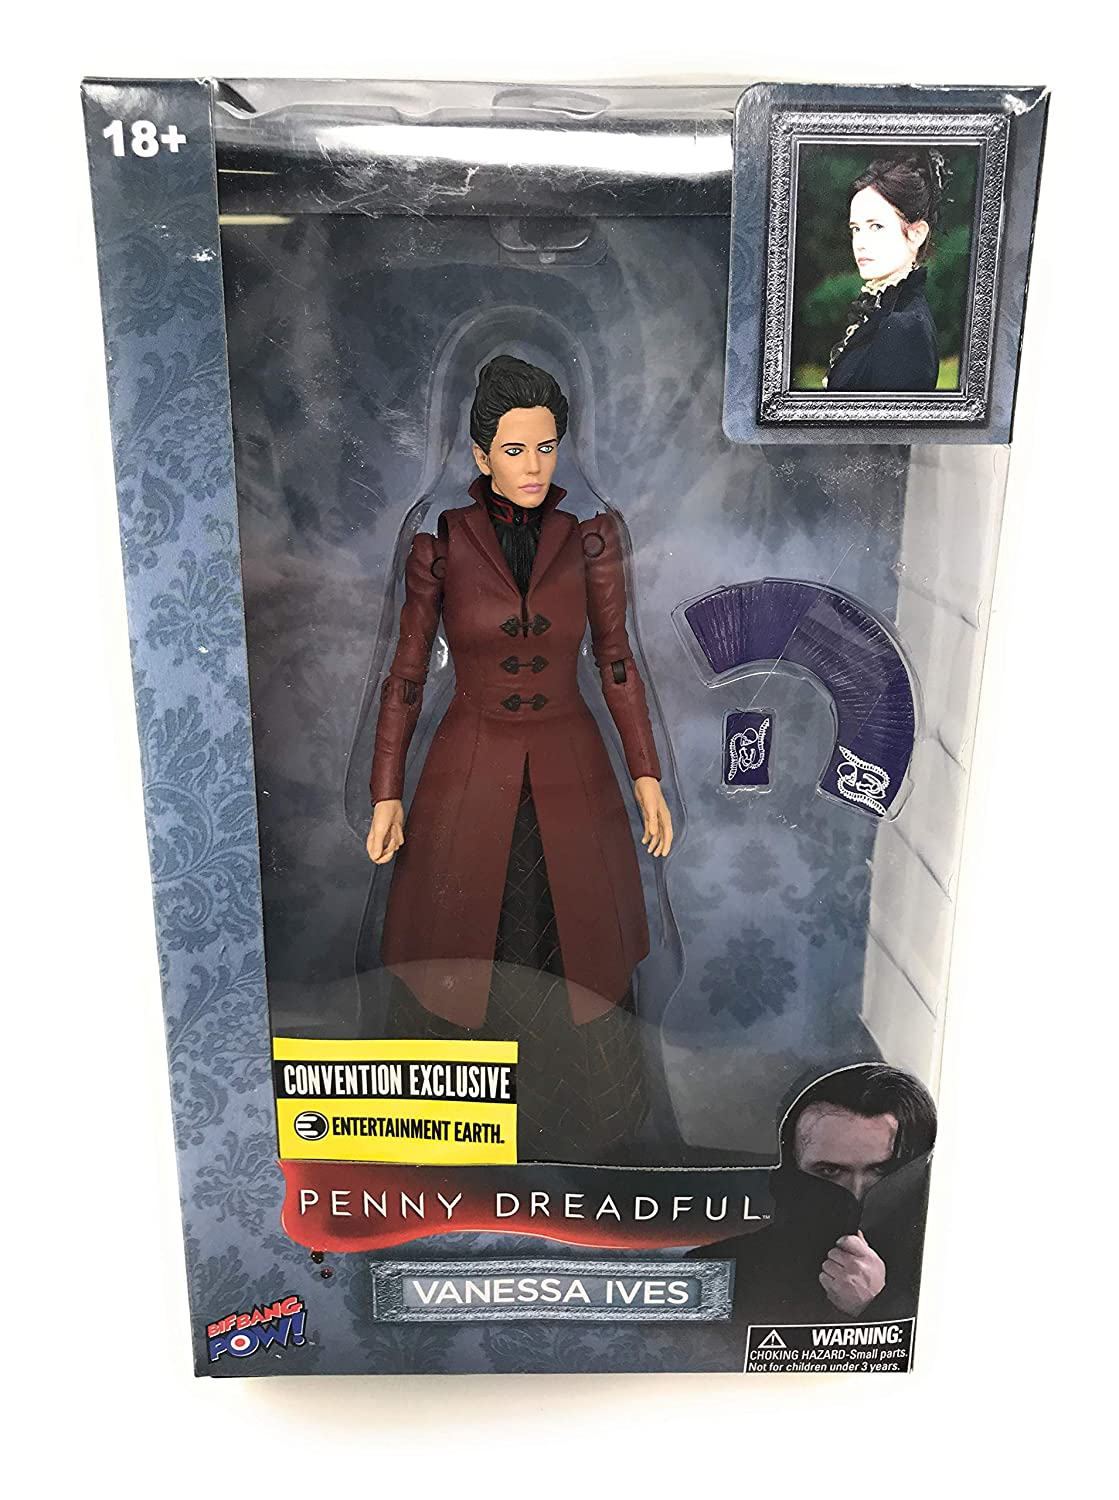 Werewolf Ethan Chandler Sir Malcolm Murray Dorian Gray Bundle: Penny Dreadful Exclusive 7 Figure Set Victor Frankenstein Vanessa Ives and The Creature with Bonus Nozlen Toy Bag Nozlen Toys Ethan Chandler